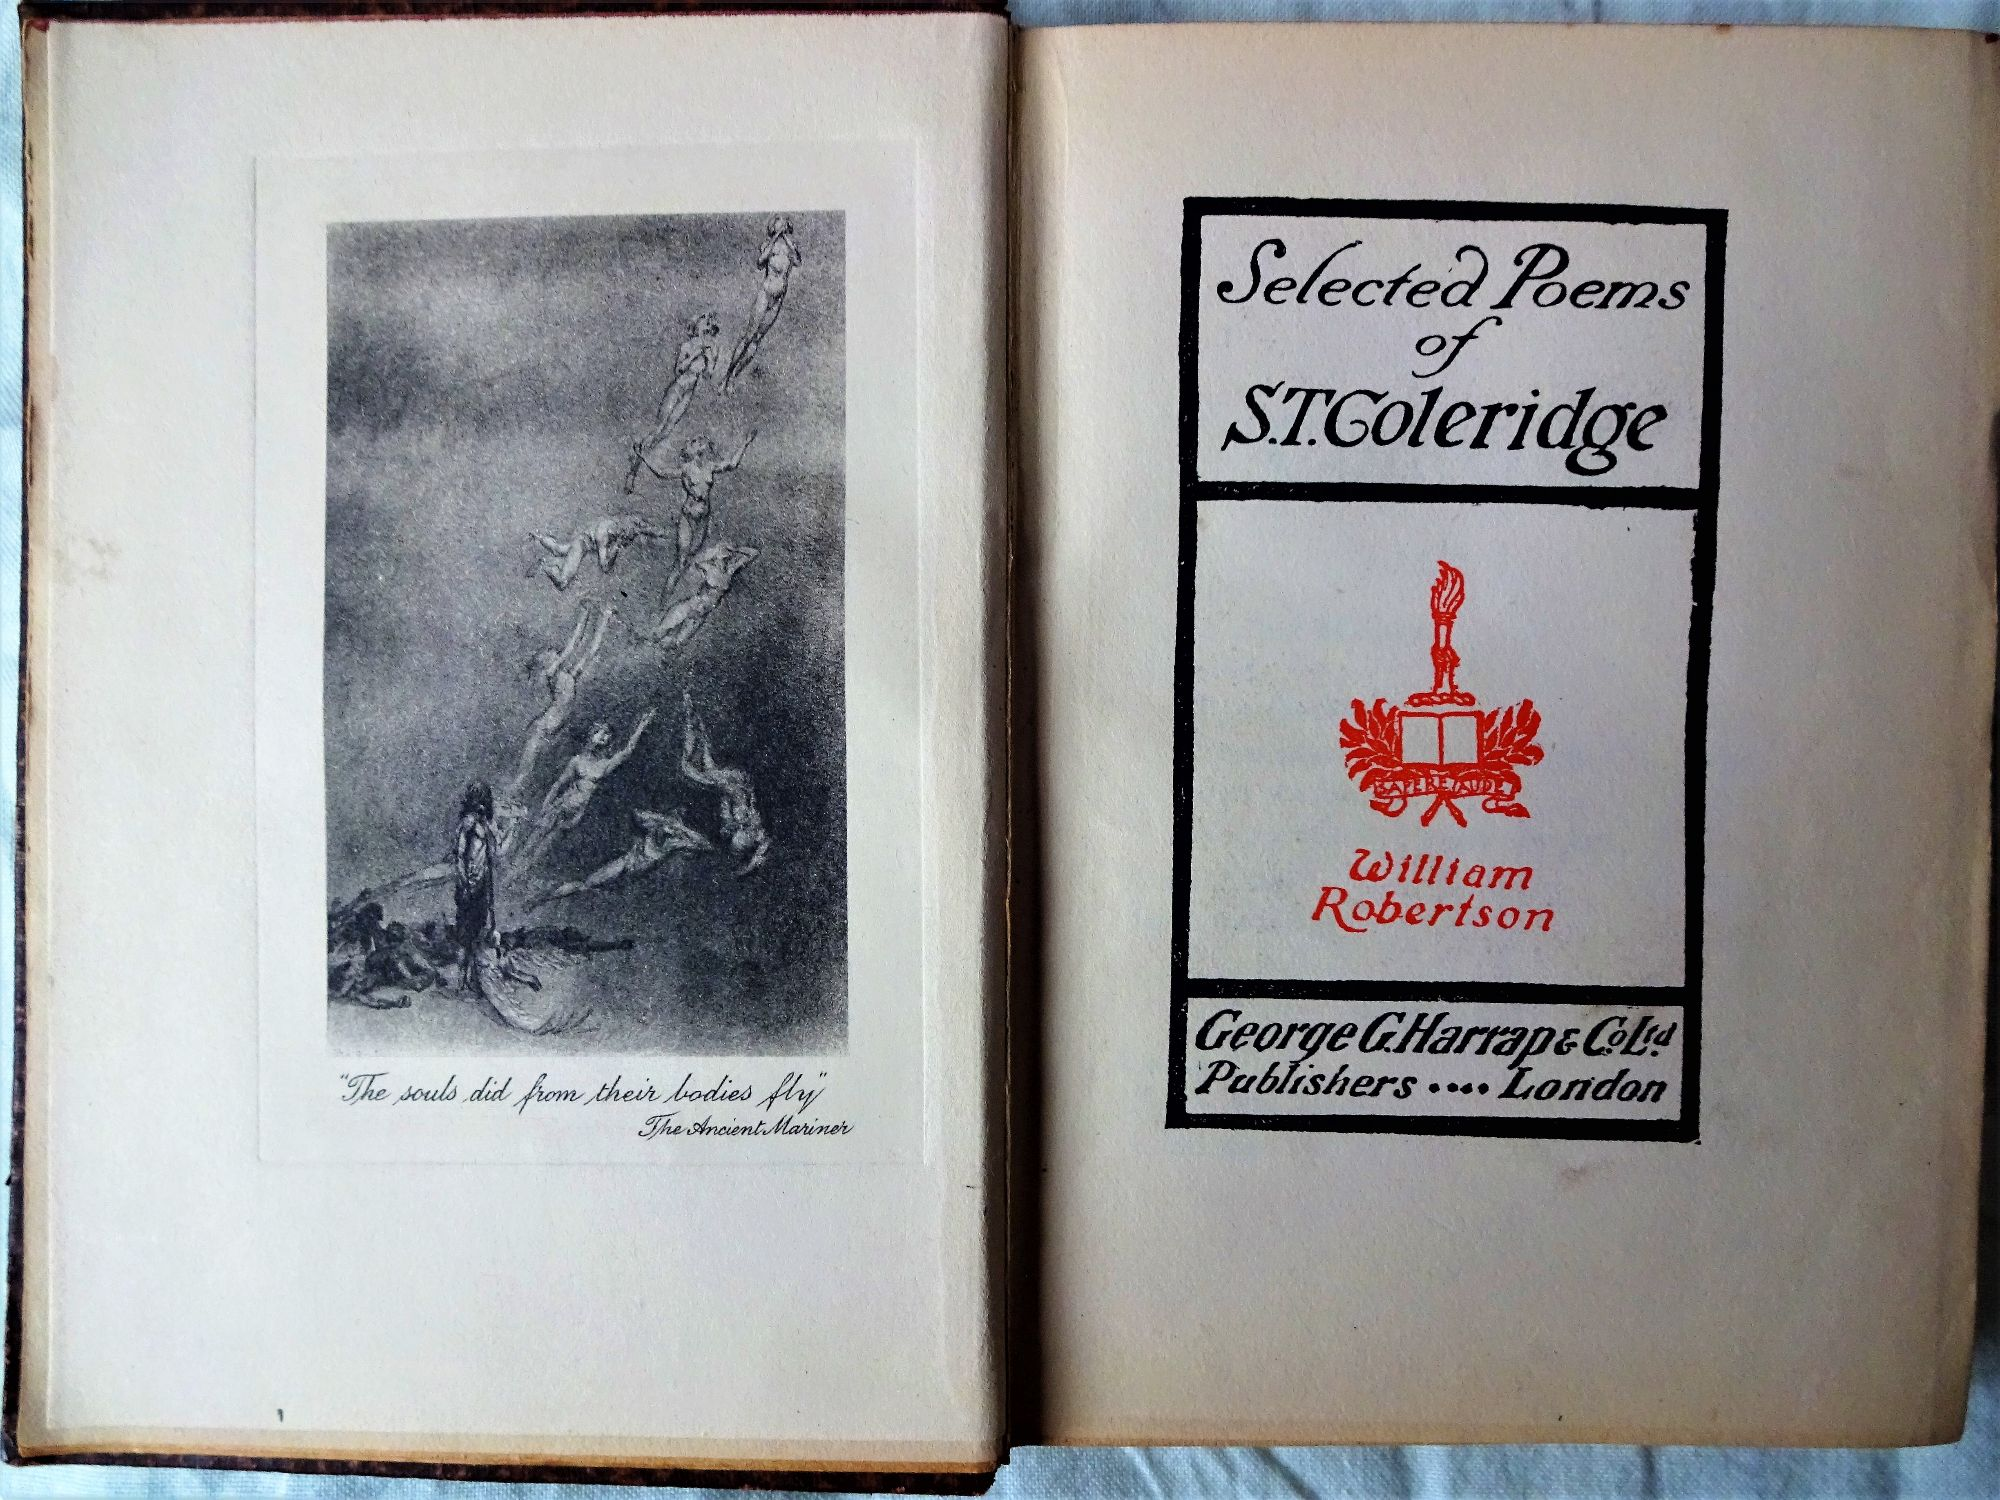 S.T. Coleridge, Selected Poems, George G. Harrap & Co., 1915.